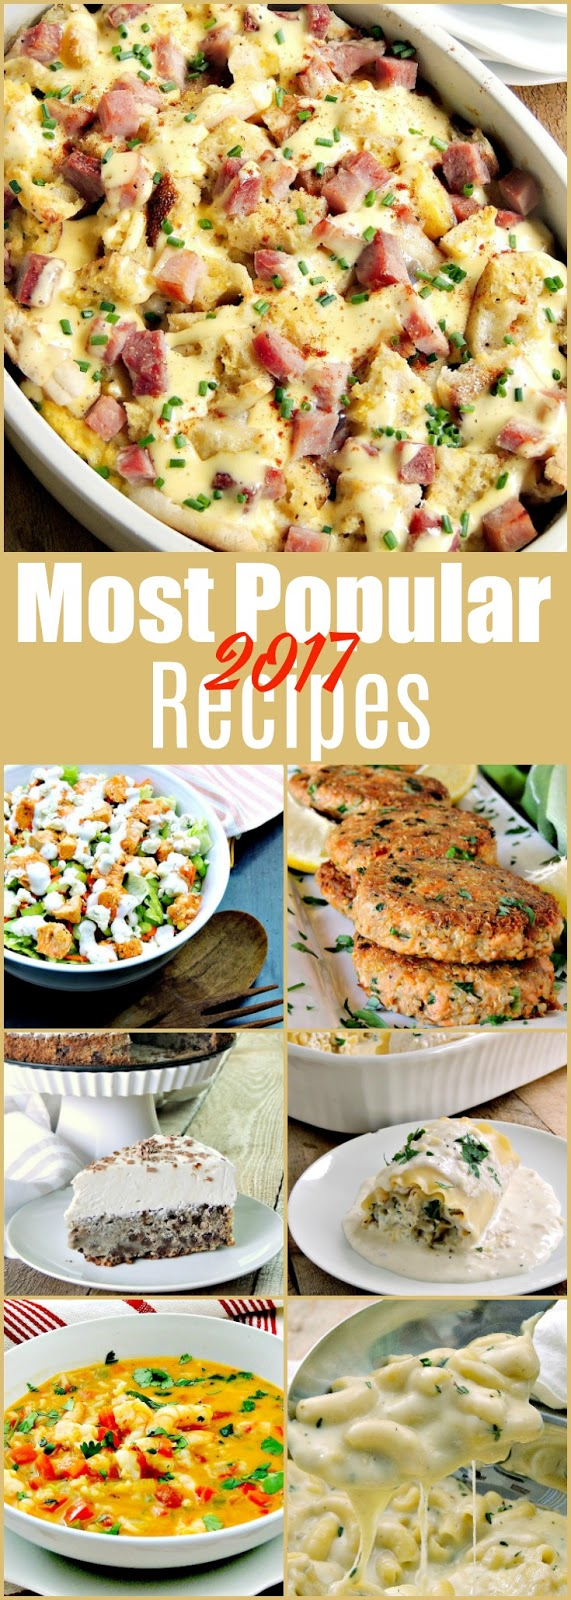 Most Popular Recipes of 2017 from www.bobbiskozykitchen.com